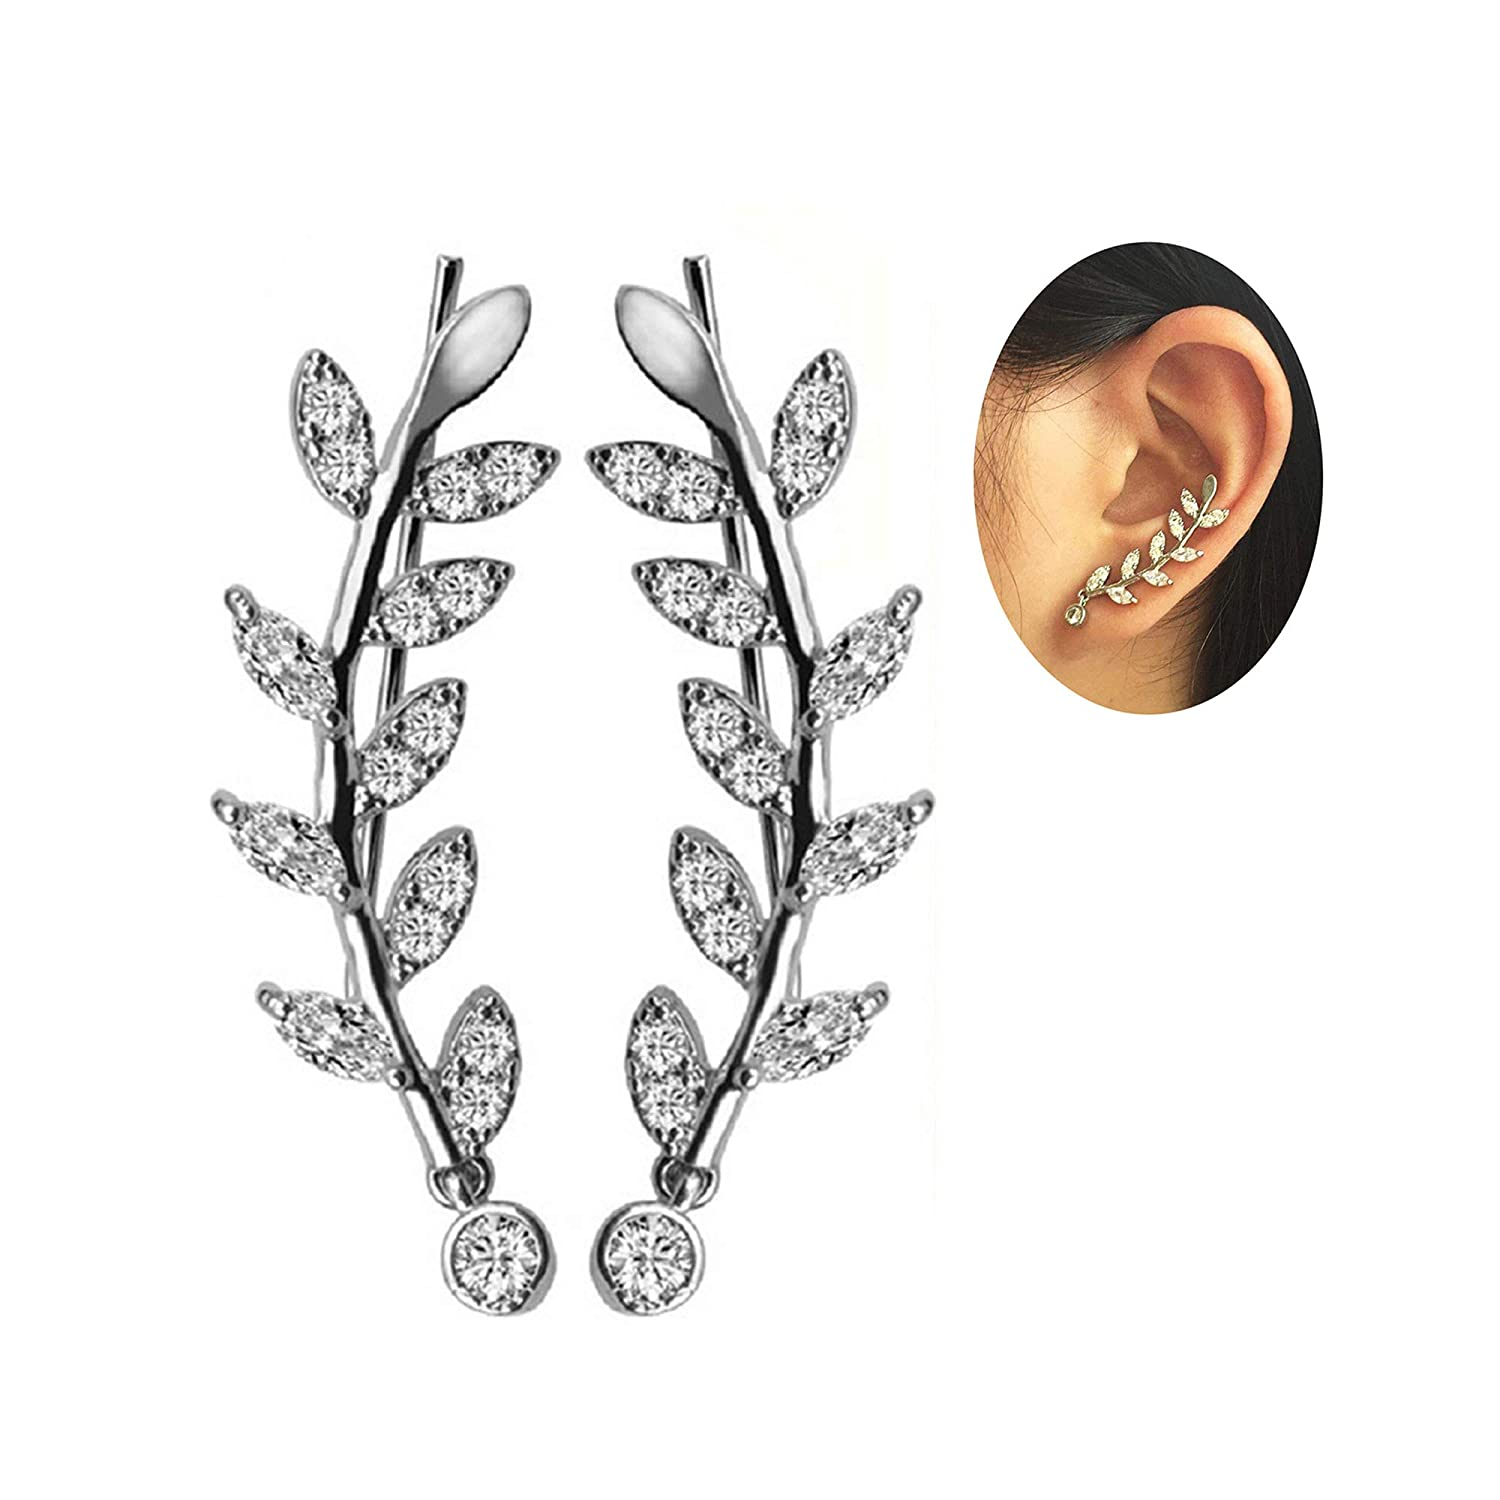 dedab5dfc93 Amazon.com: New Arrival Ear Crawler Cuff Earrings 14k White Gold Over Sterling  Silver Climber Studs Olive Leaf for Women Teen Girls(Olive Leaf A): Jewelry